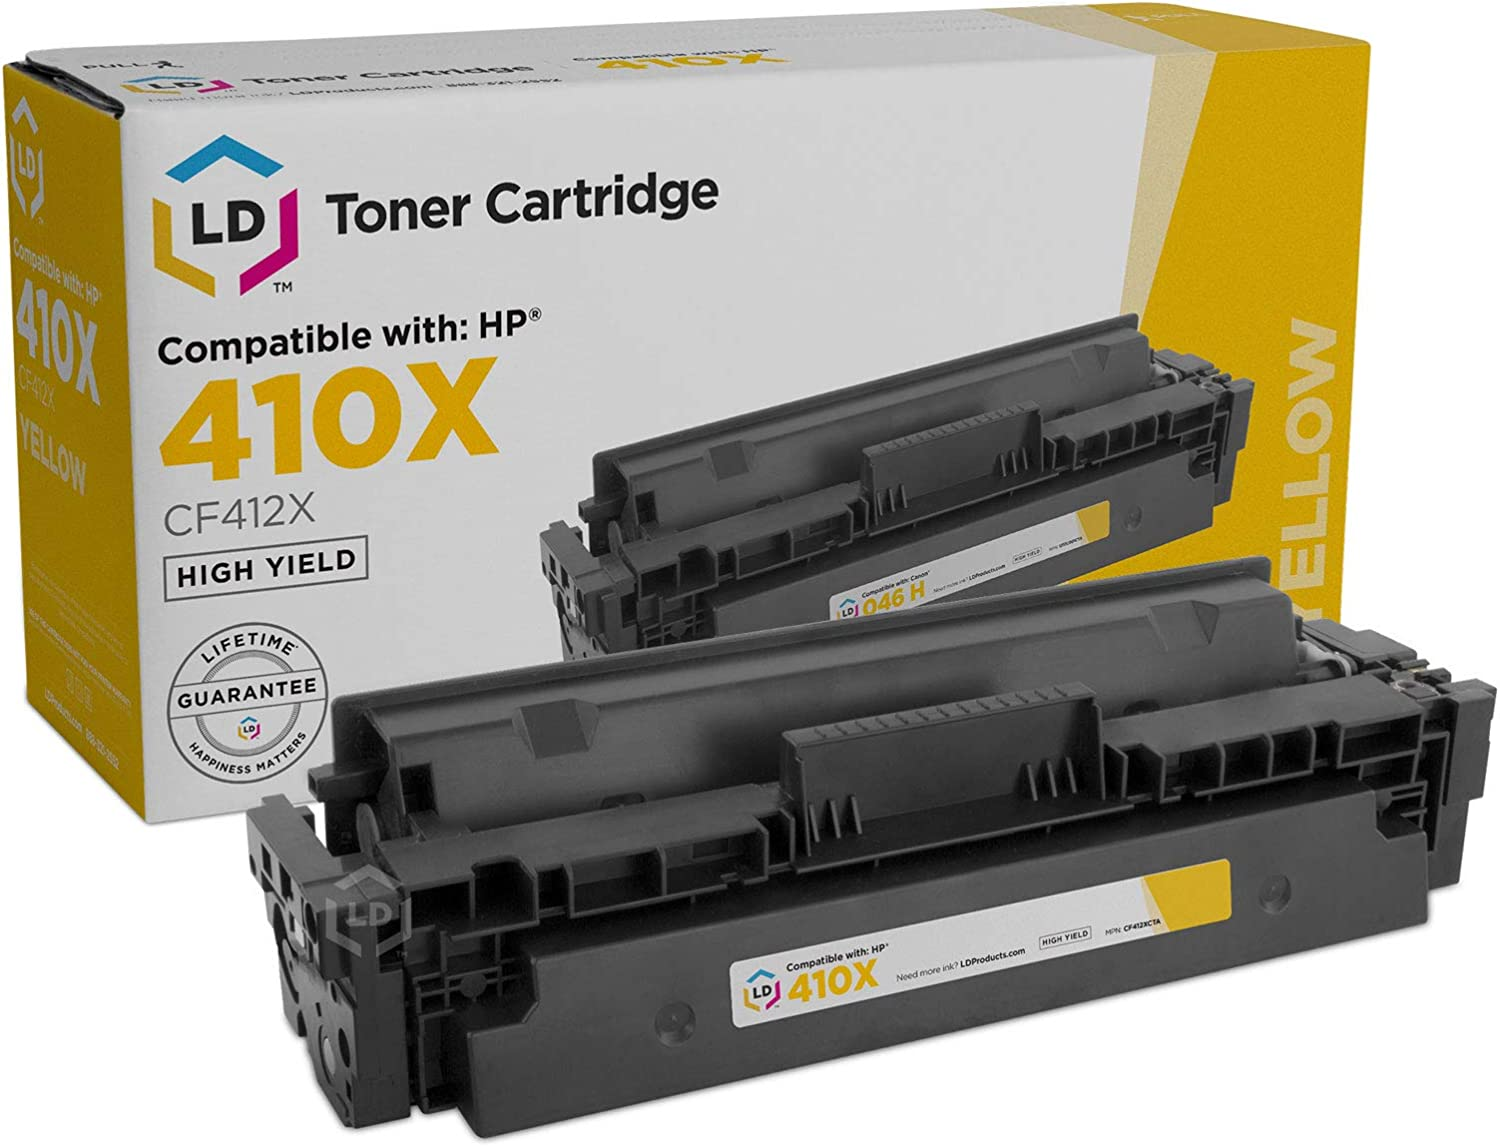 LD Compatible Toner Cartridge Replacement for HP 410X CF412X High Yield (Yellow)